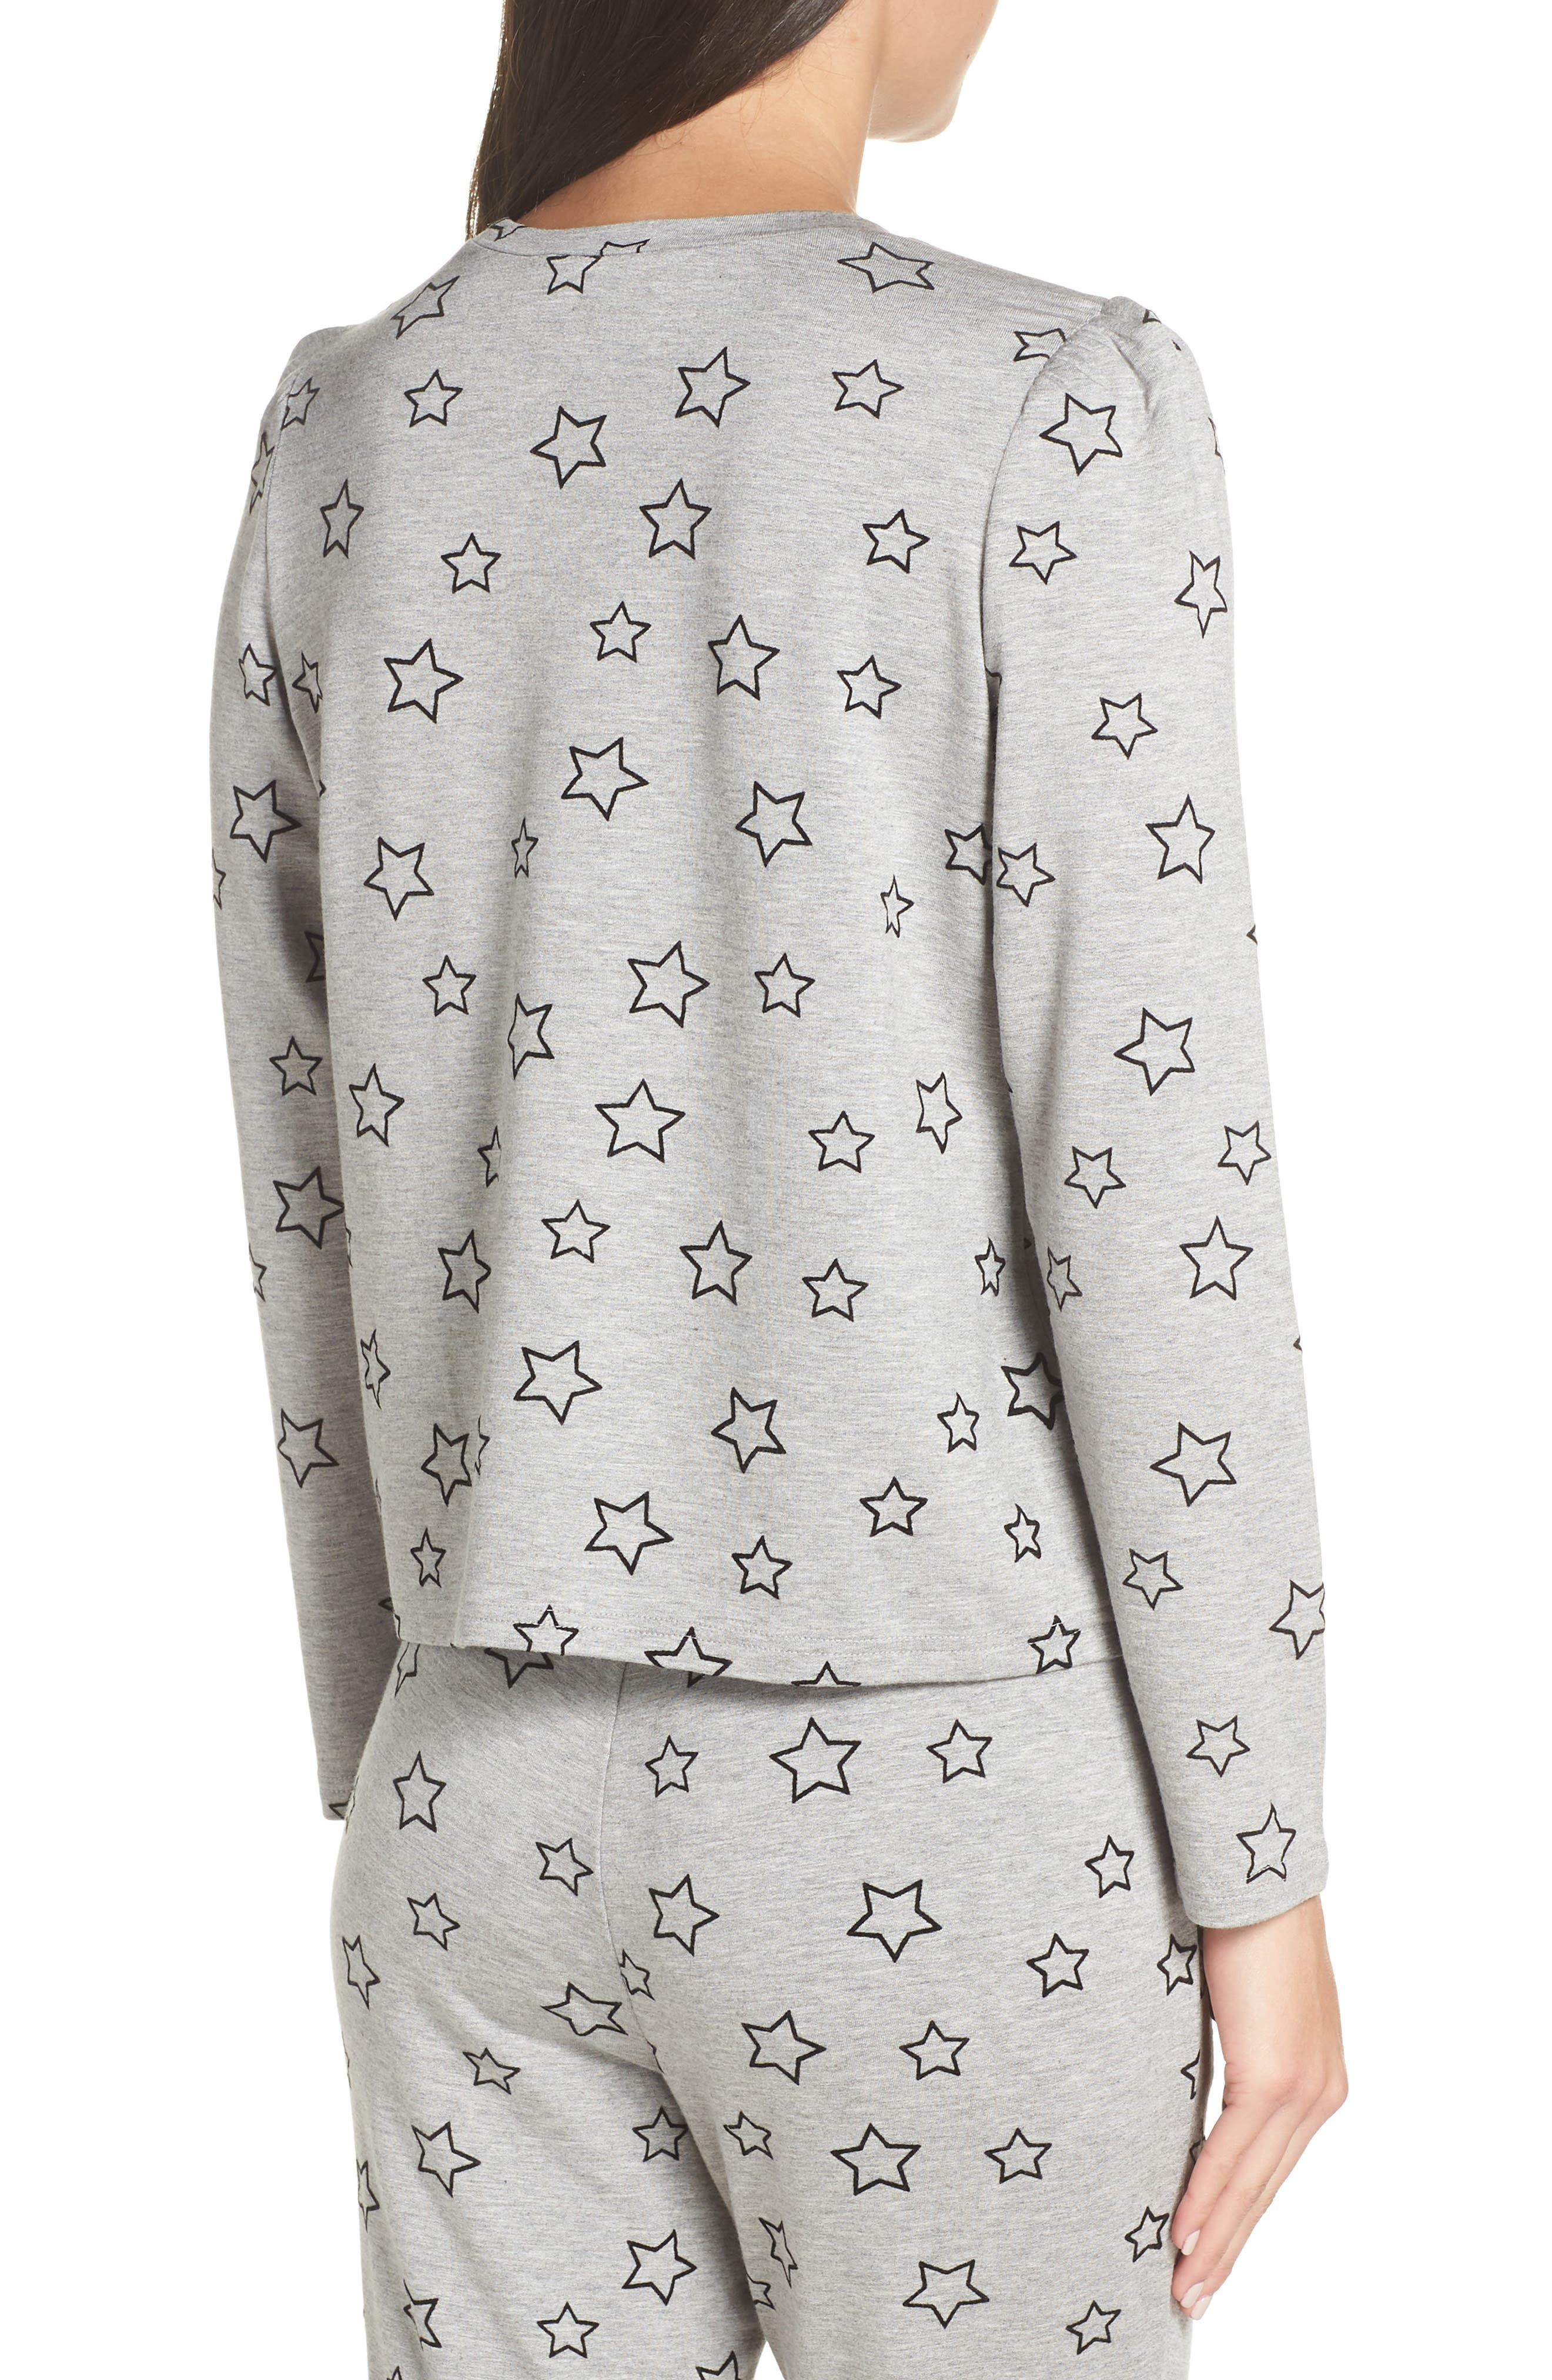 Seeing Stars Top,                             Alternate thumbnail 2, color,                             HEATHER GREY